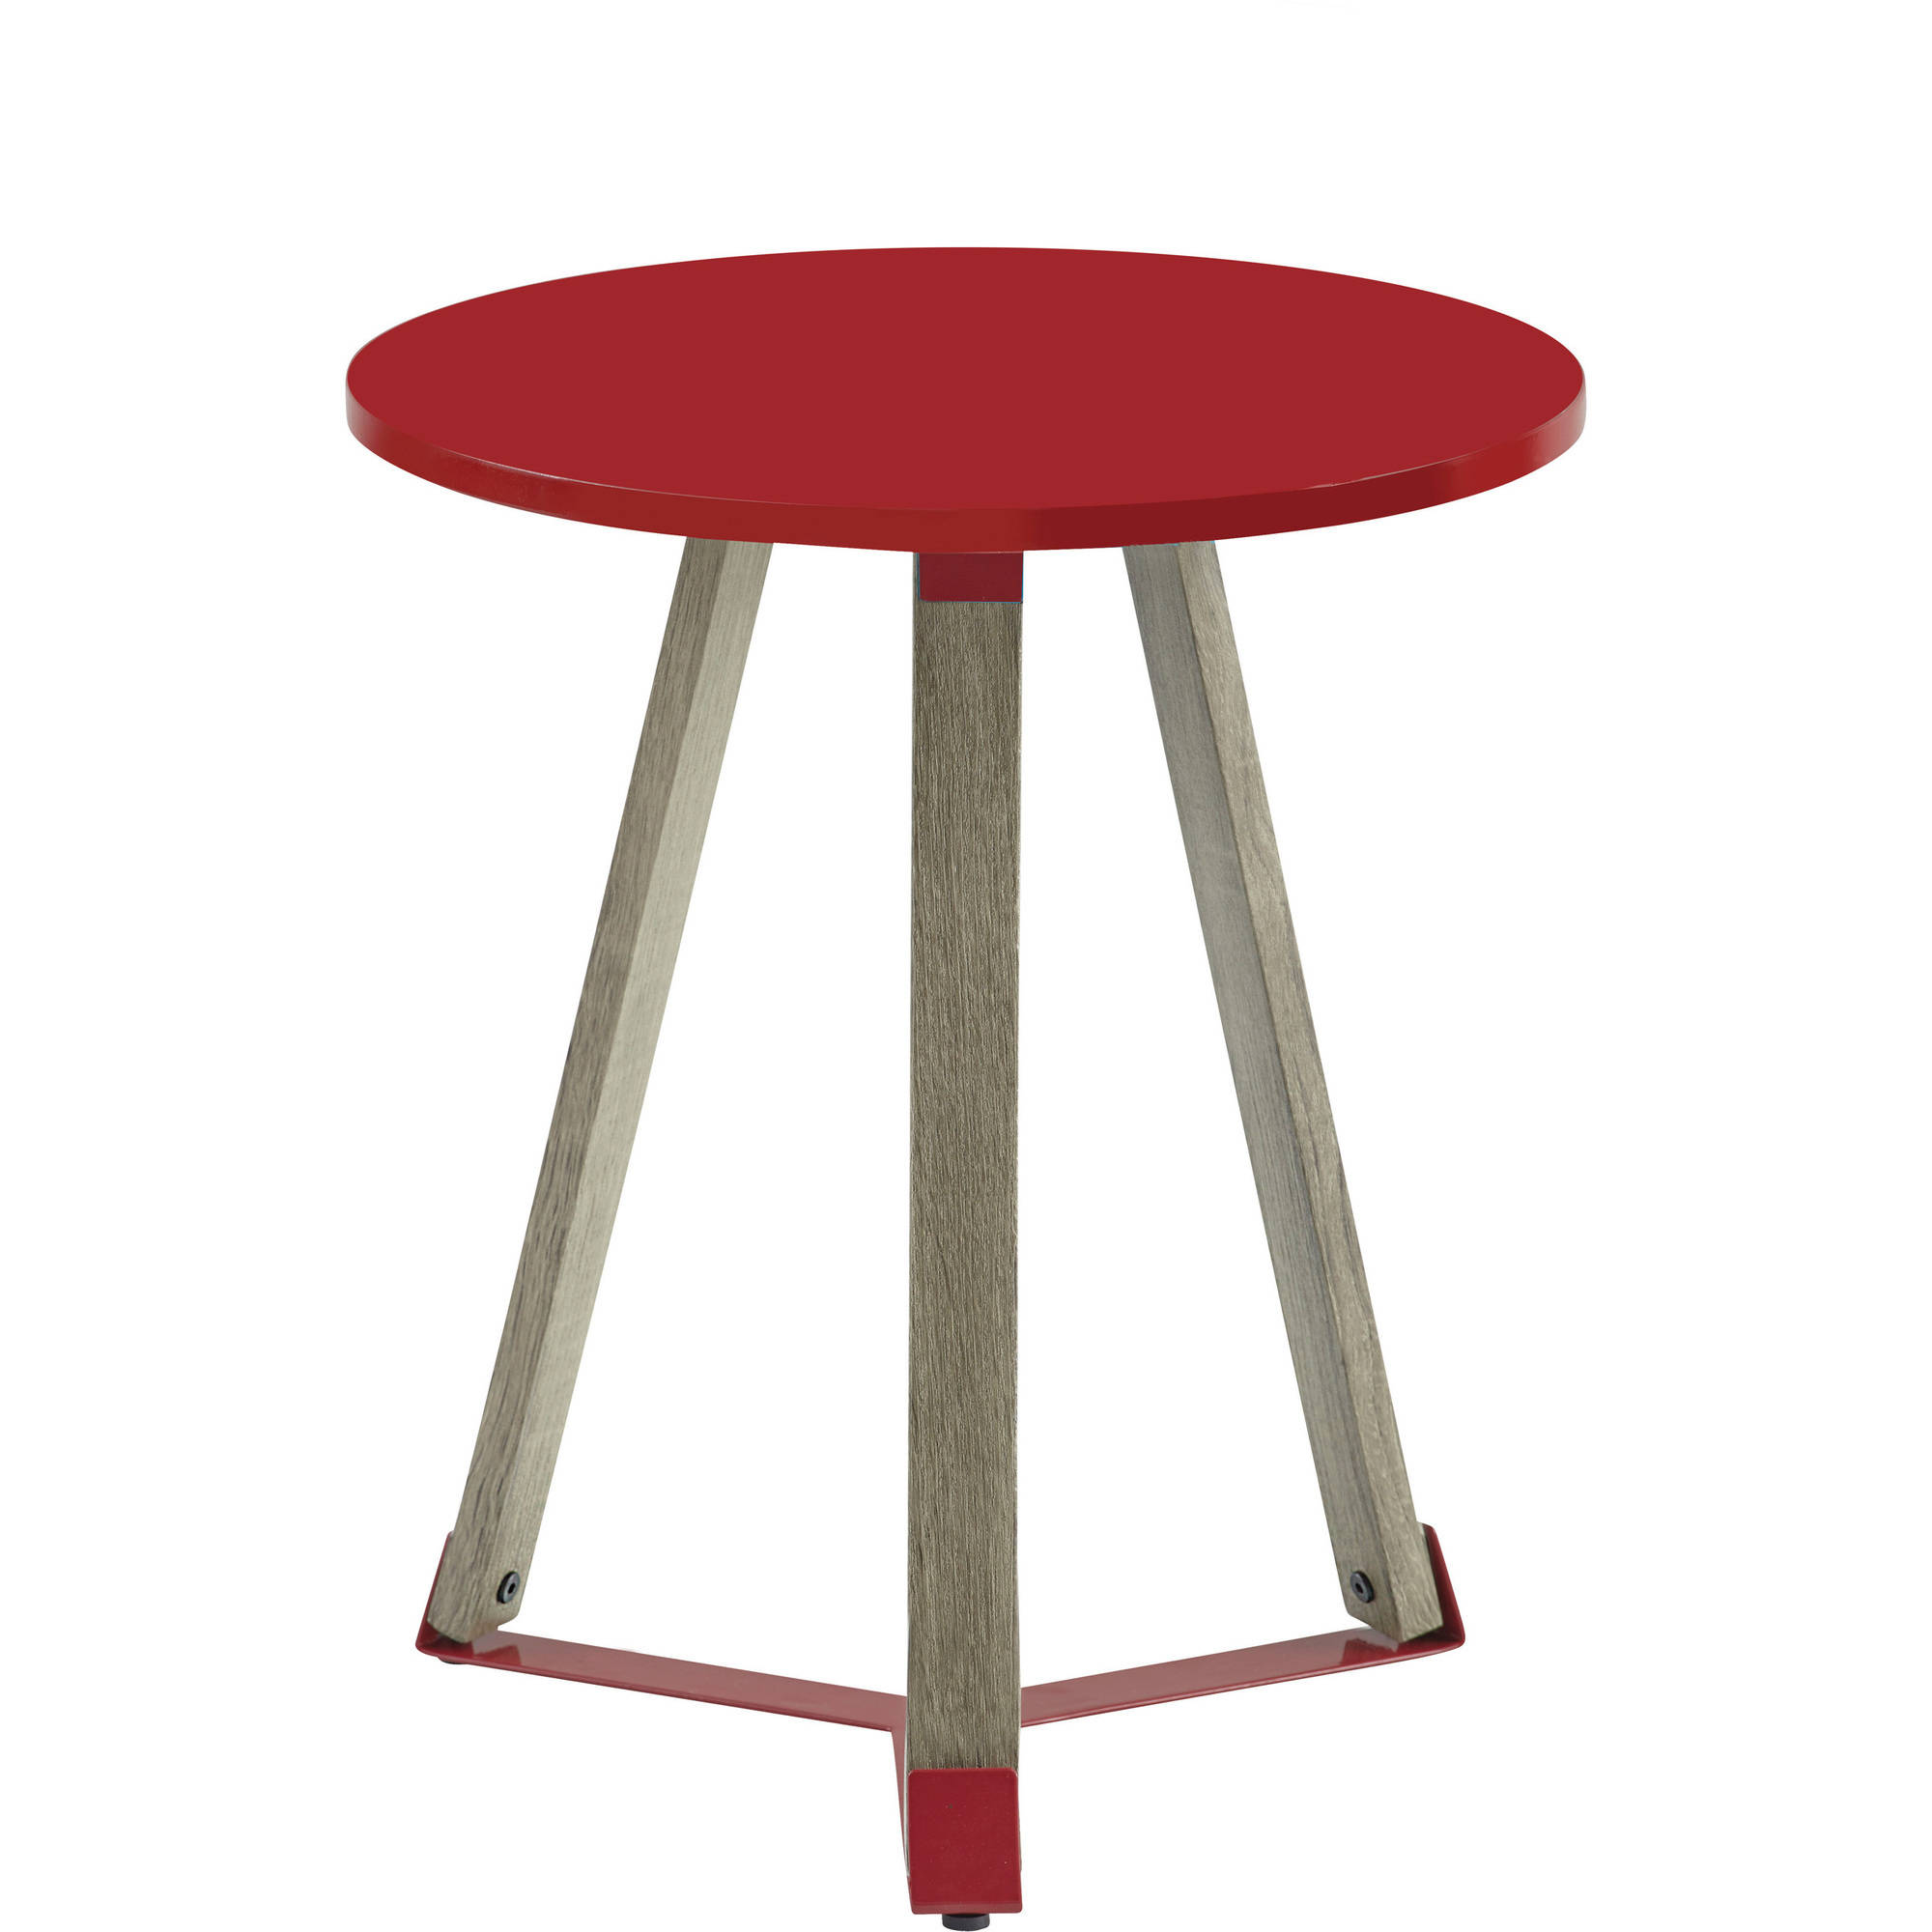 urban phoenix red mid century round table room essentials accent upholstered stacking chair jcpenney tables counter height dining set with bench tablecloth runners computer desk